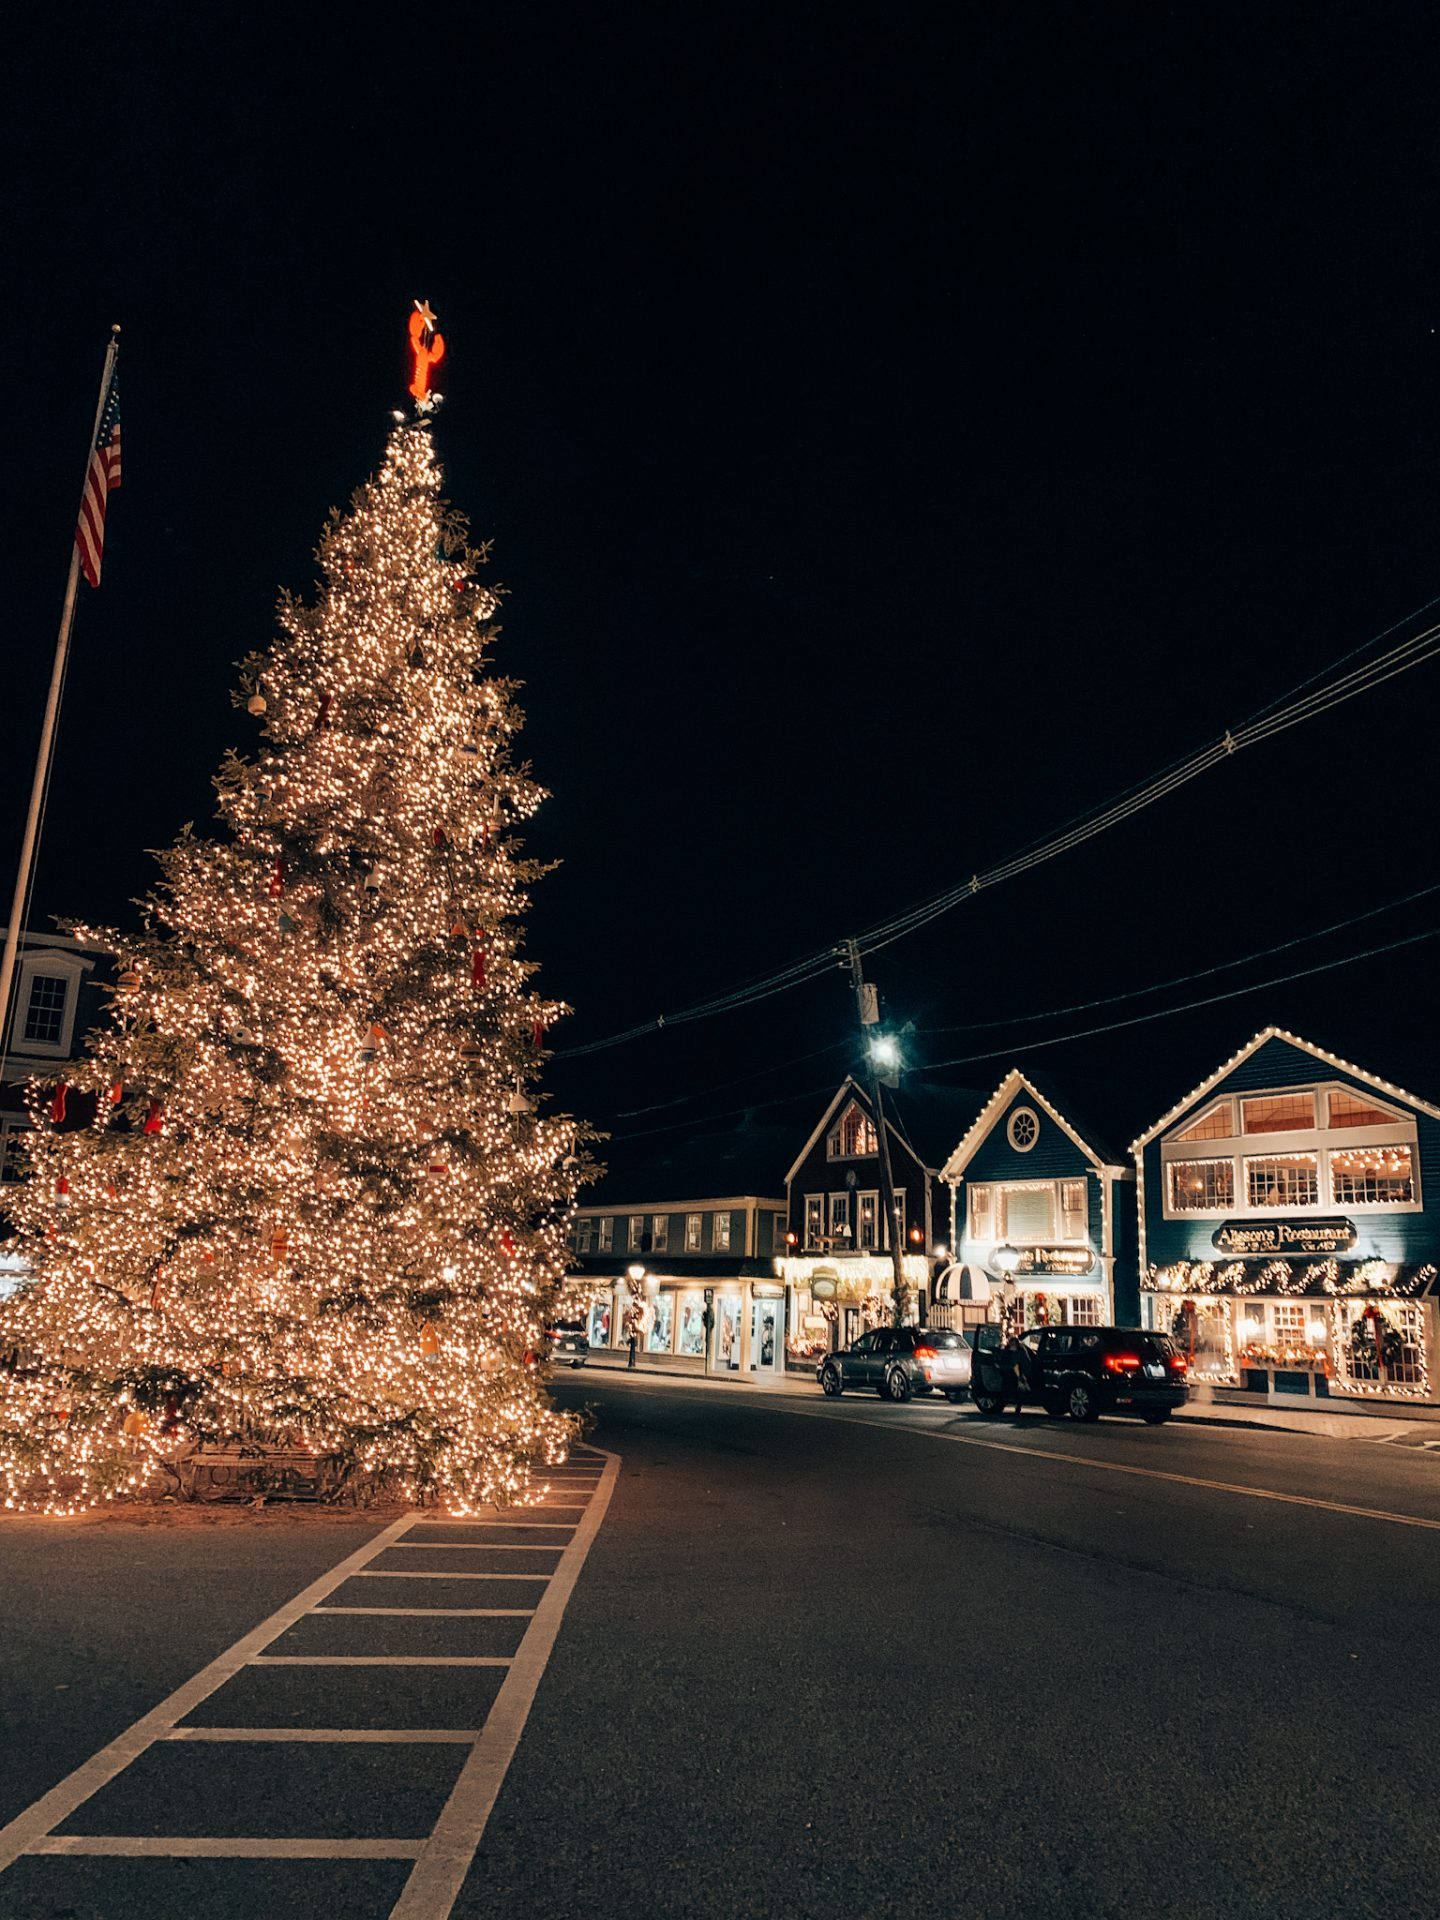 Downtown Kennebunkport decked out for the holidays in New England